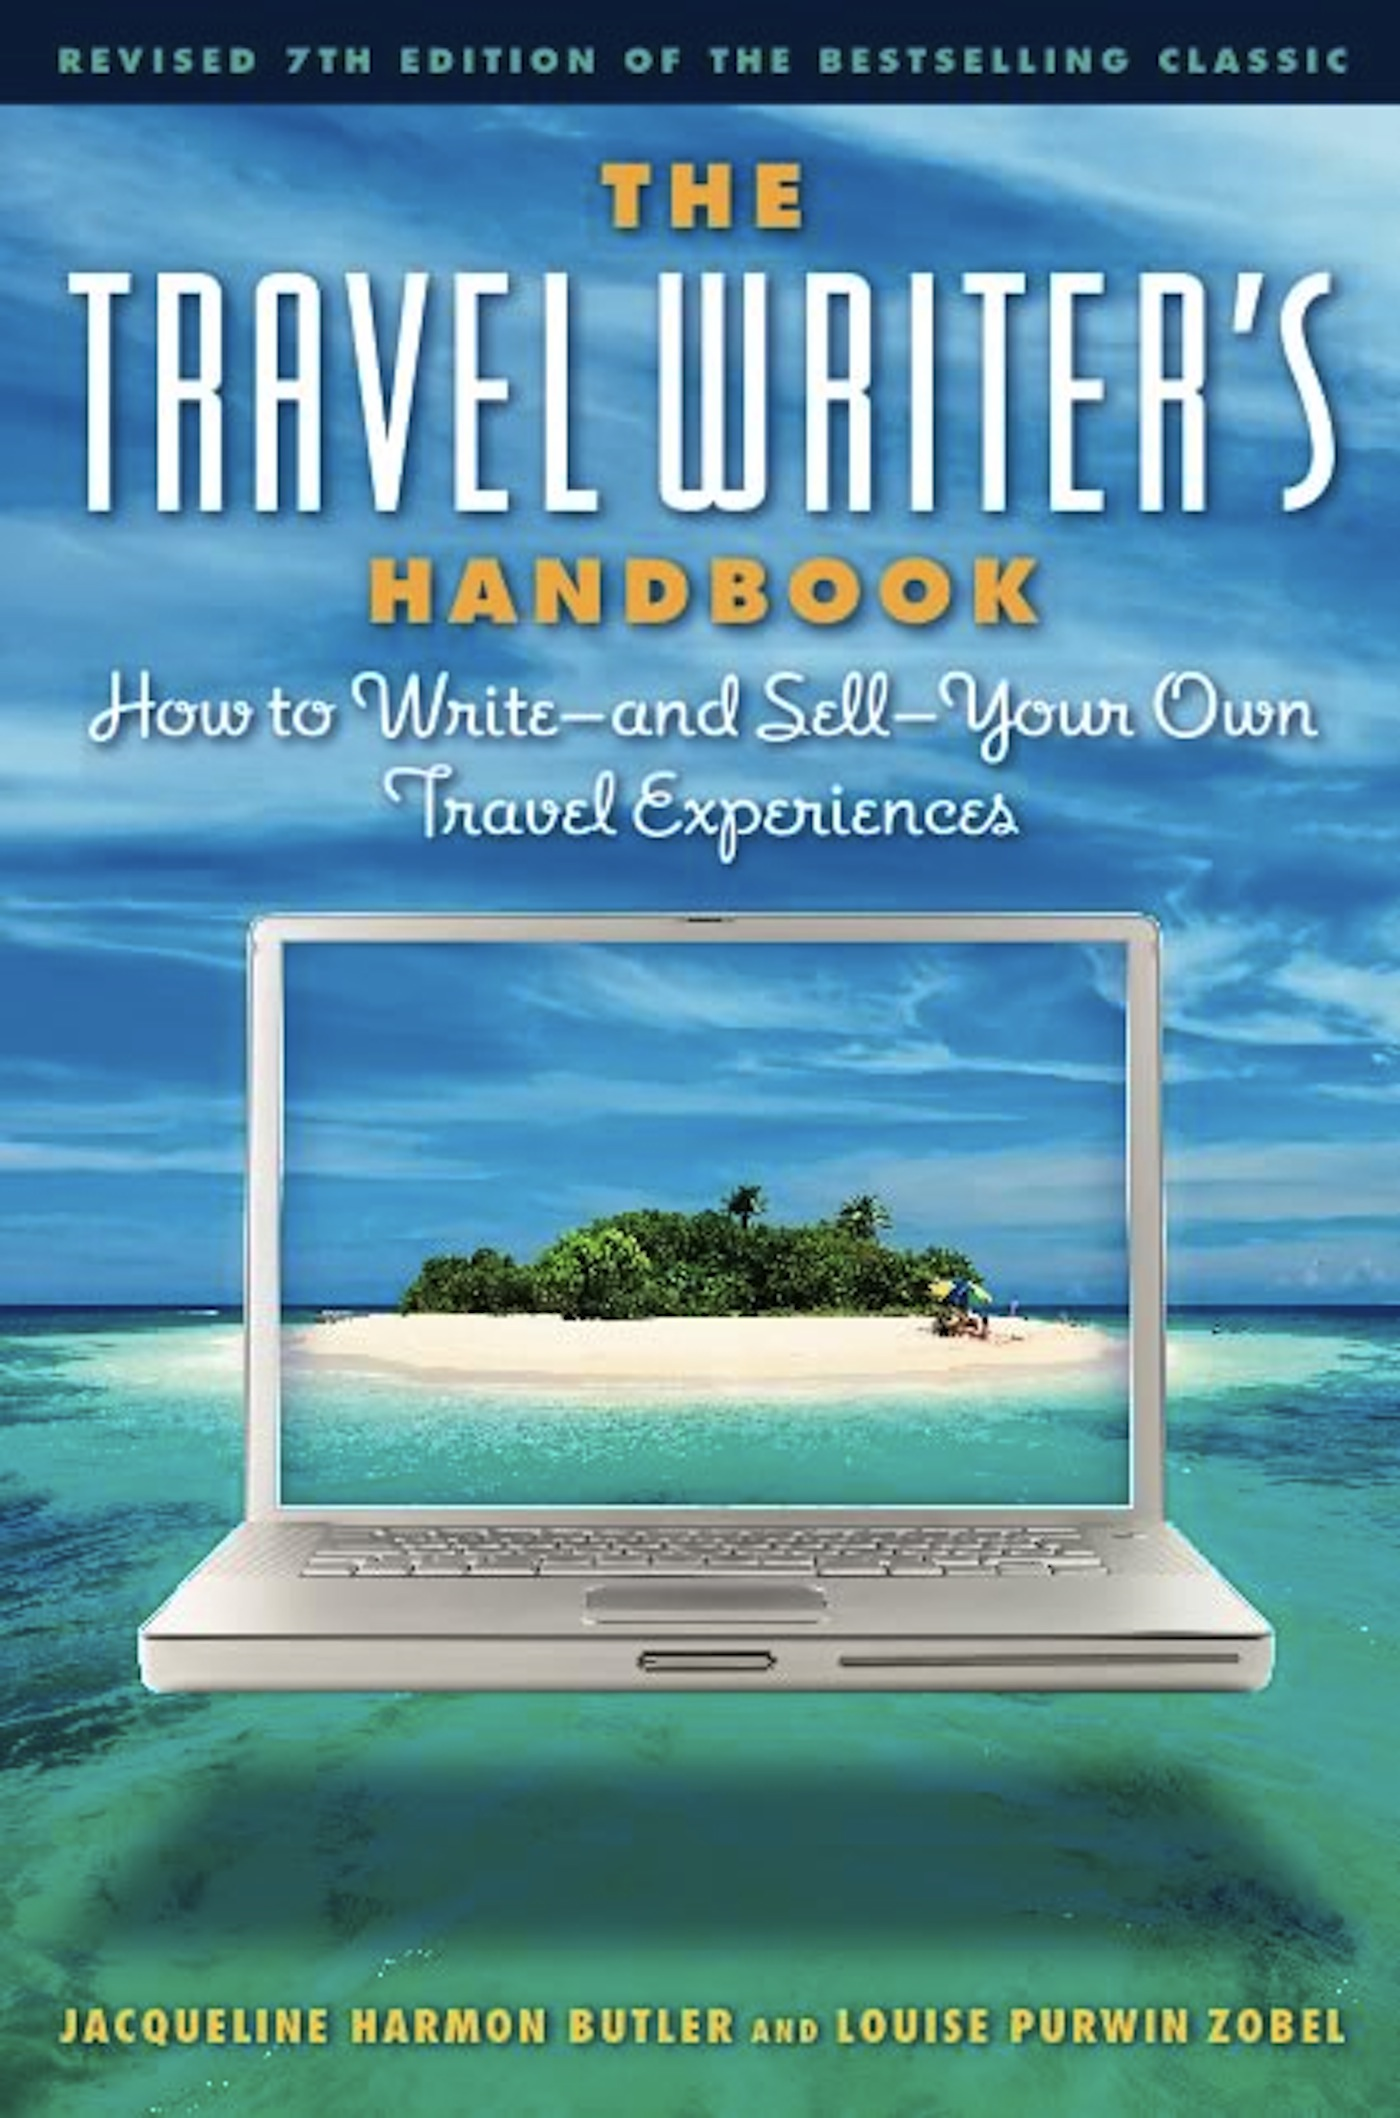 The Travel Writer's Handbook